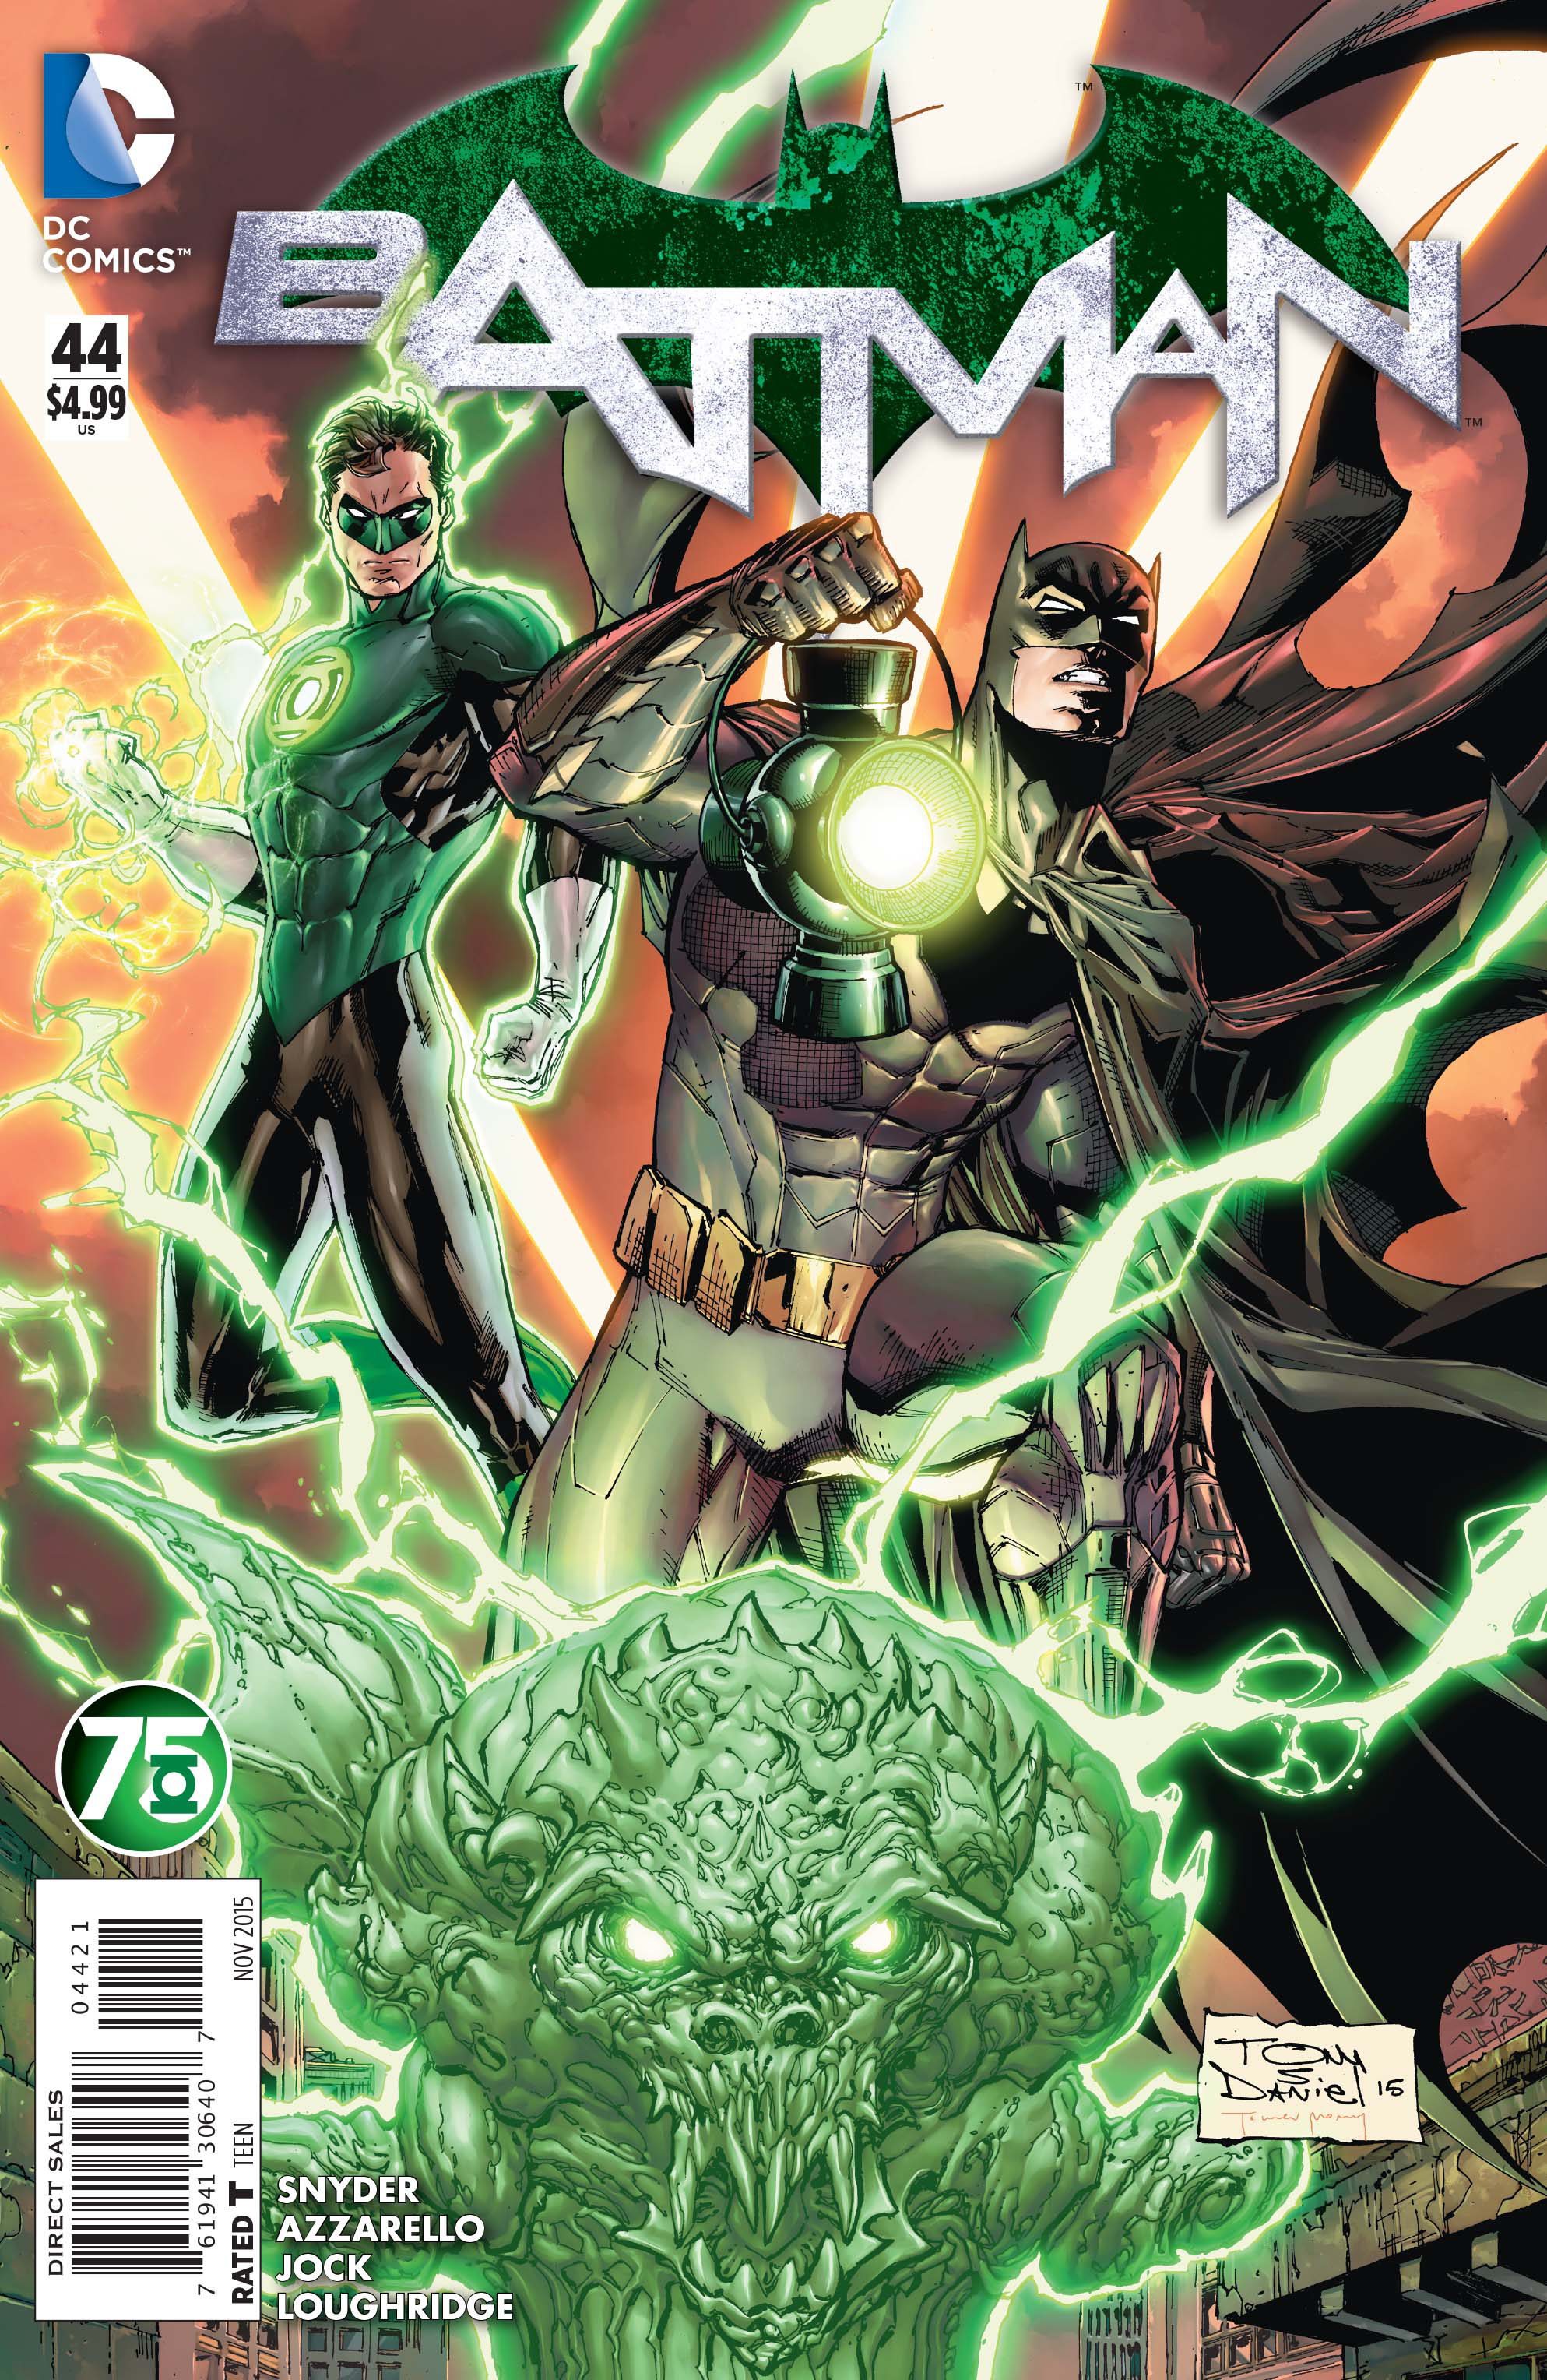 BATMAN #44 GREEN LANTERN 75 VAR ED